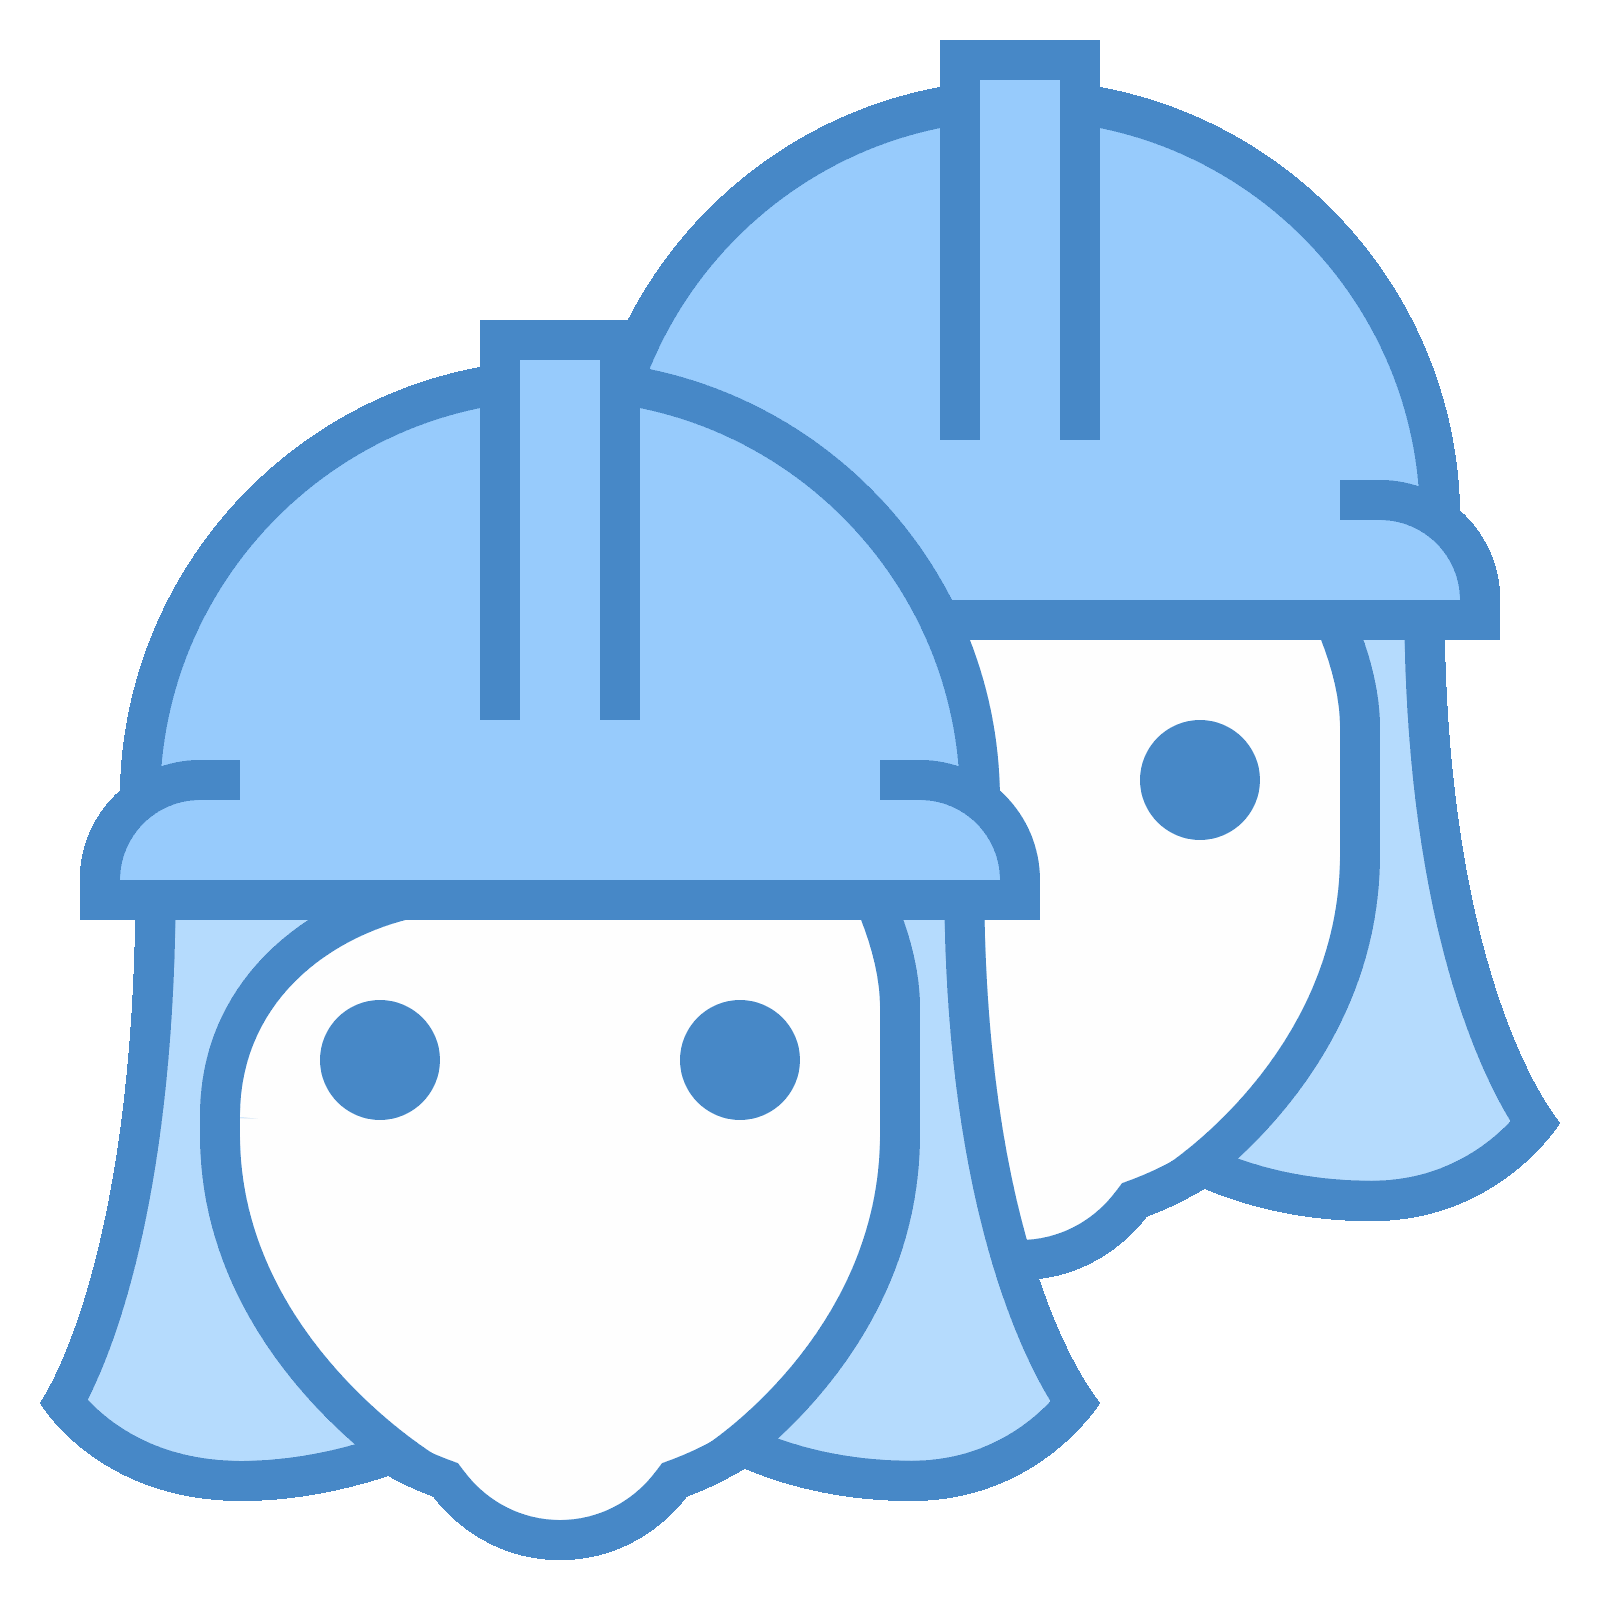 Construction workers icon free. Contractor clipart factory worker